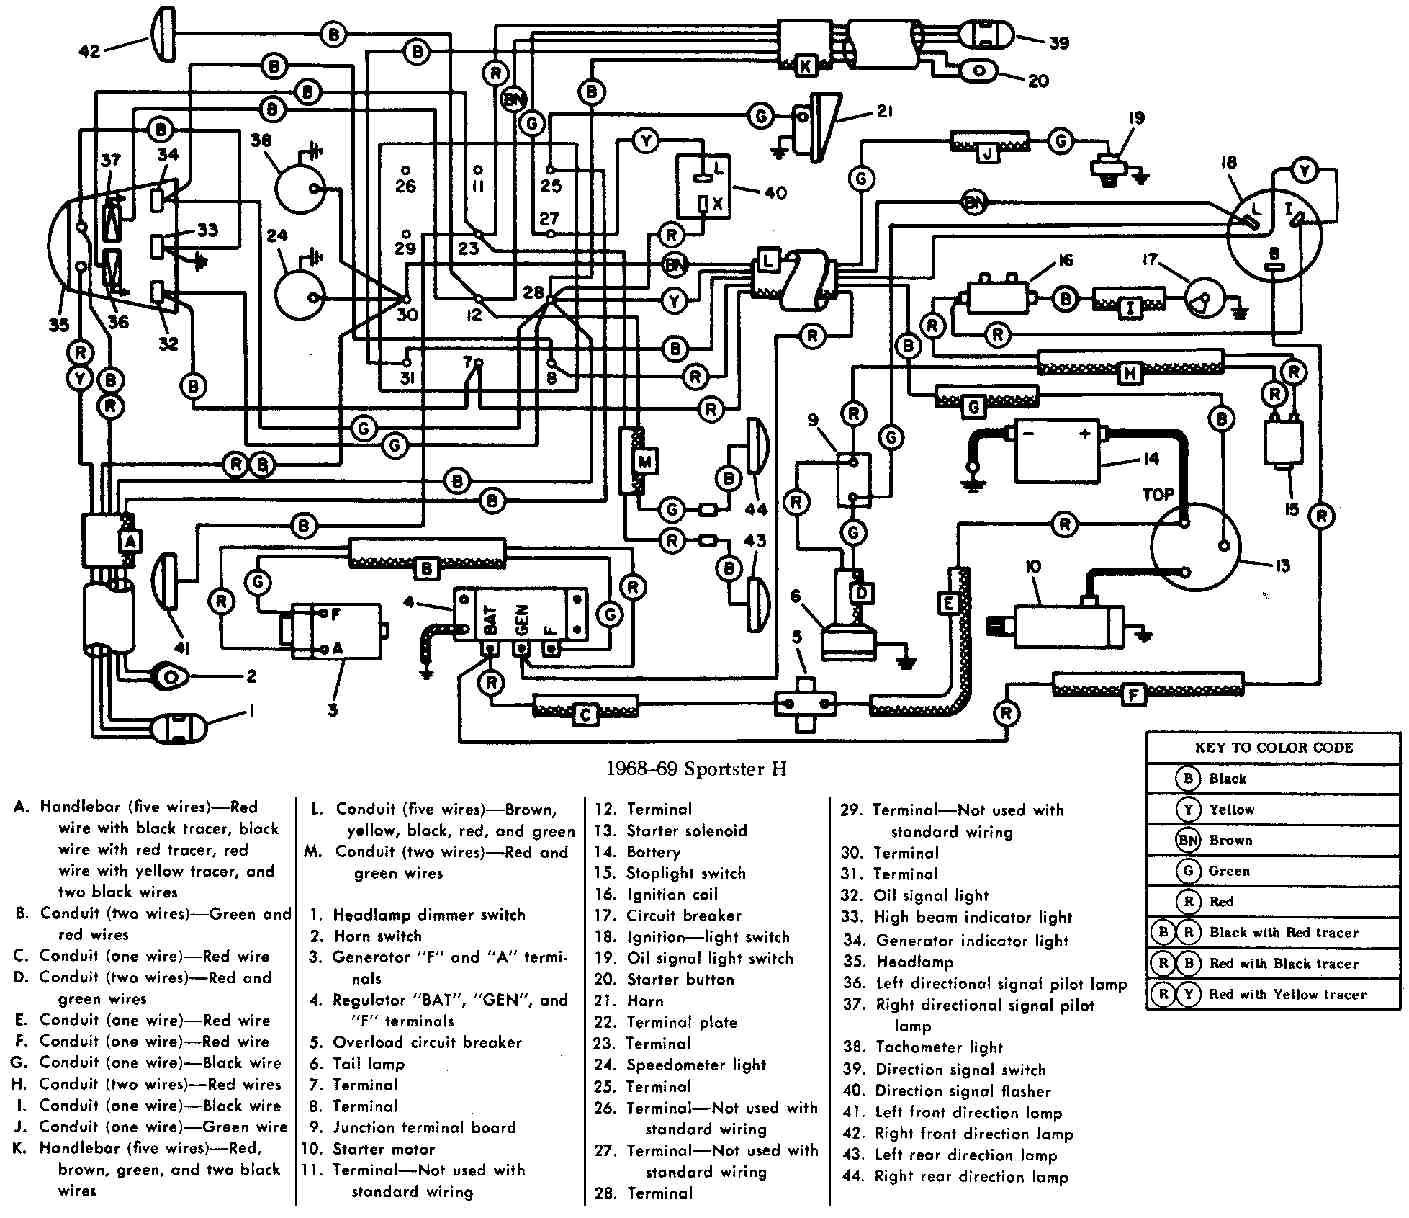 75 Flh Wiring Diagram